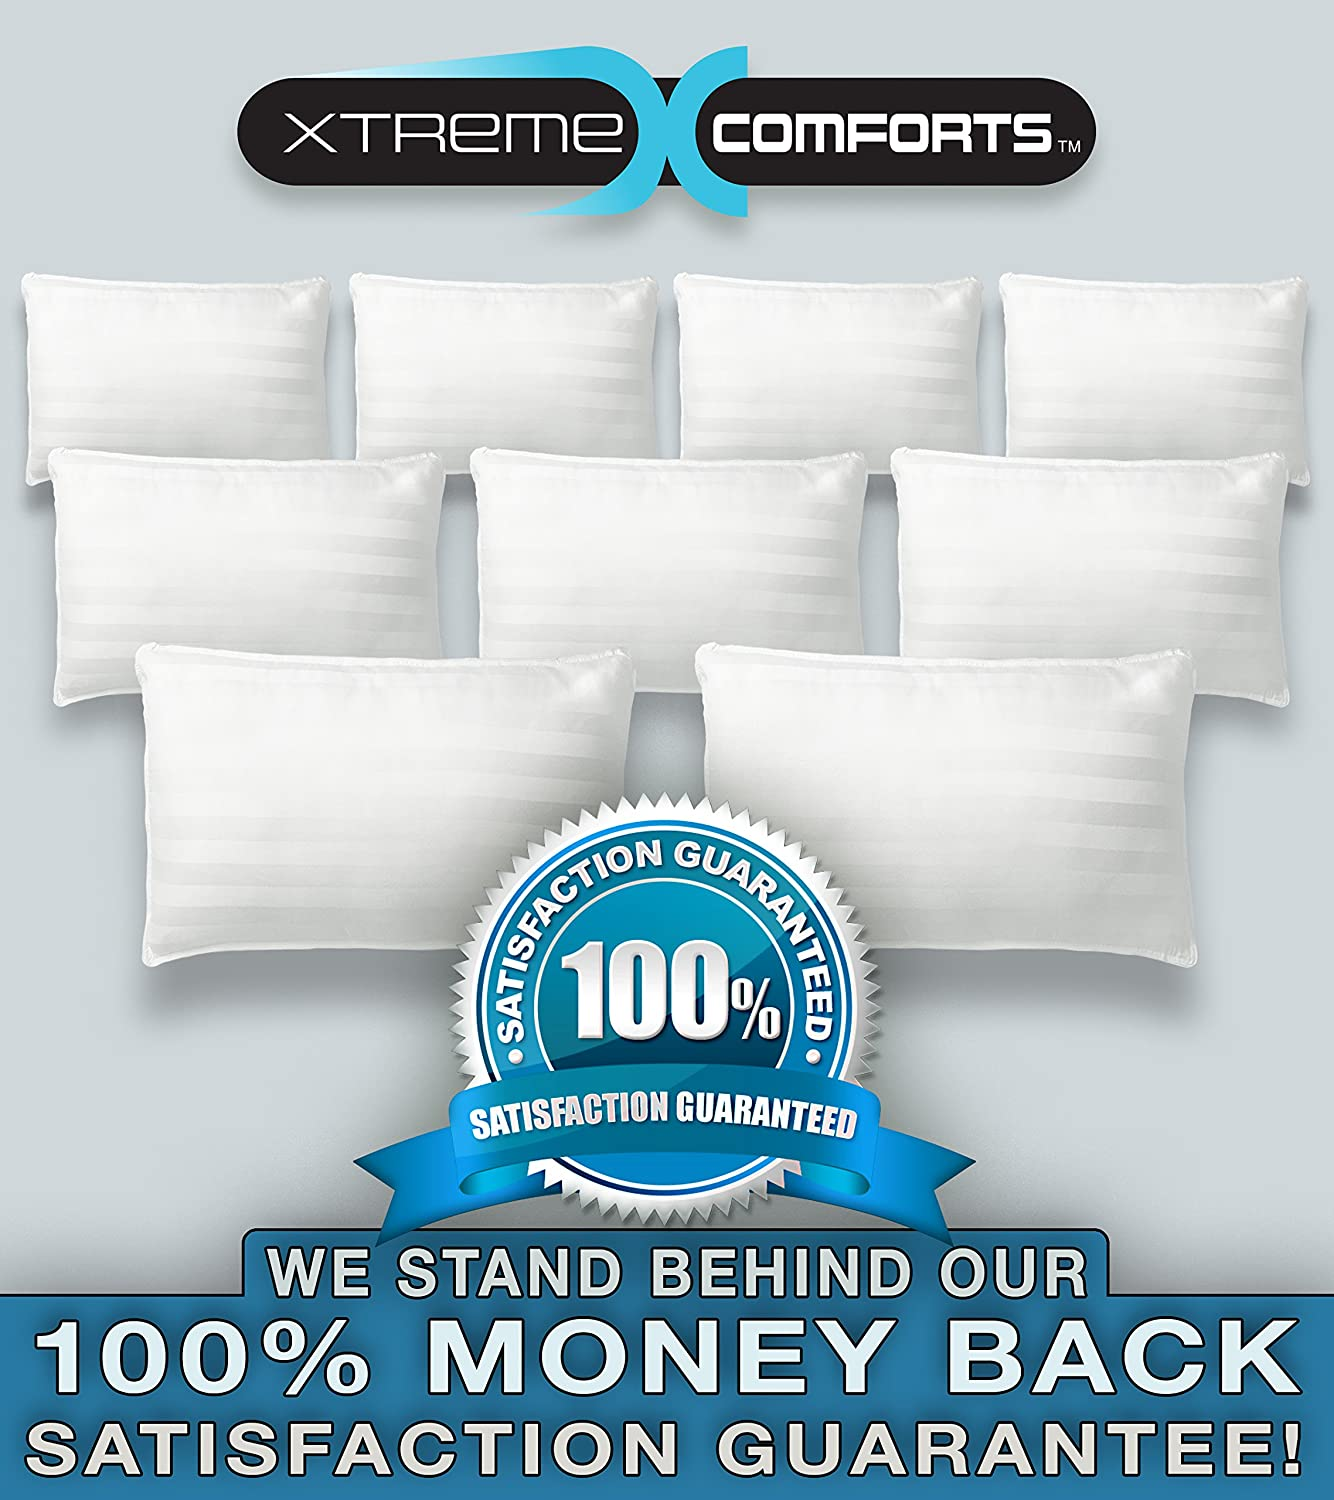 100% Bamboo Pillow - Adjustable, Perfect Comfort For Every Sleeper by Xtreme Comforts (Queen)